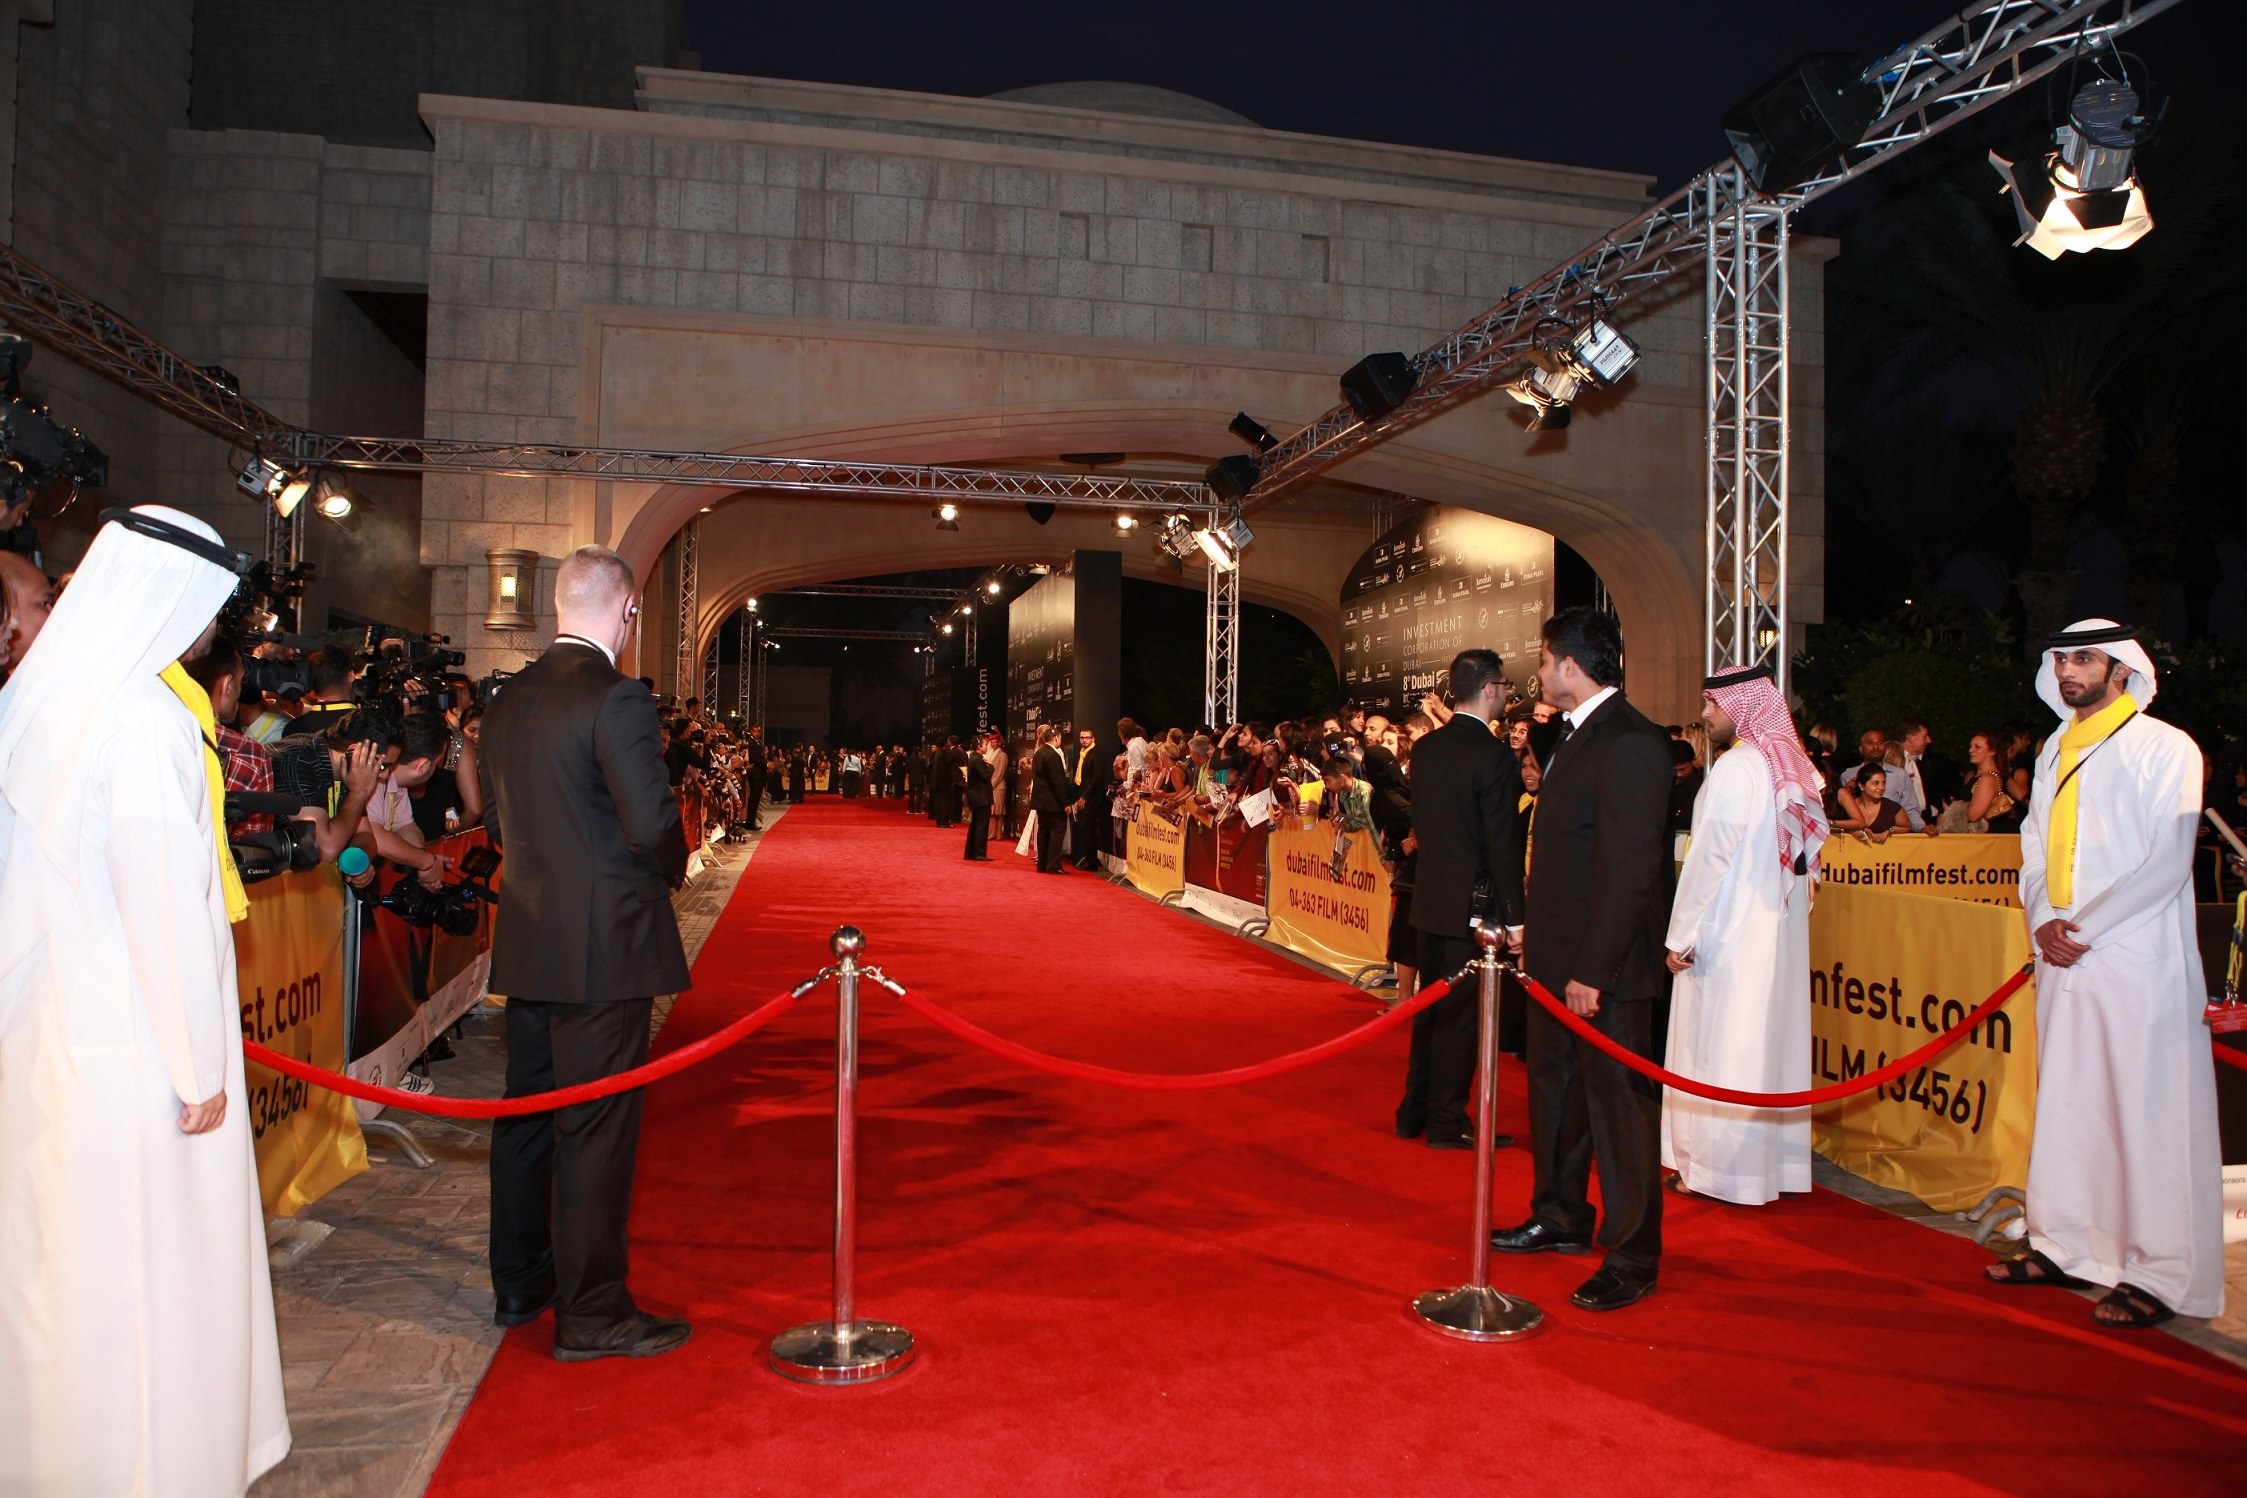 Twitter will give round-the-clock insights sharing all the glitz and glamour from the red carpet.